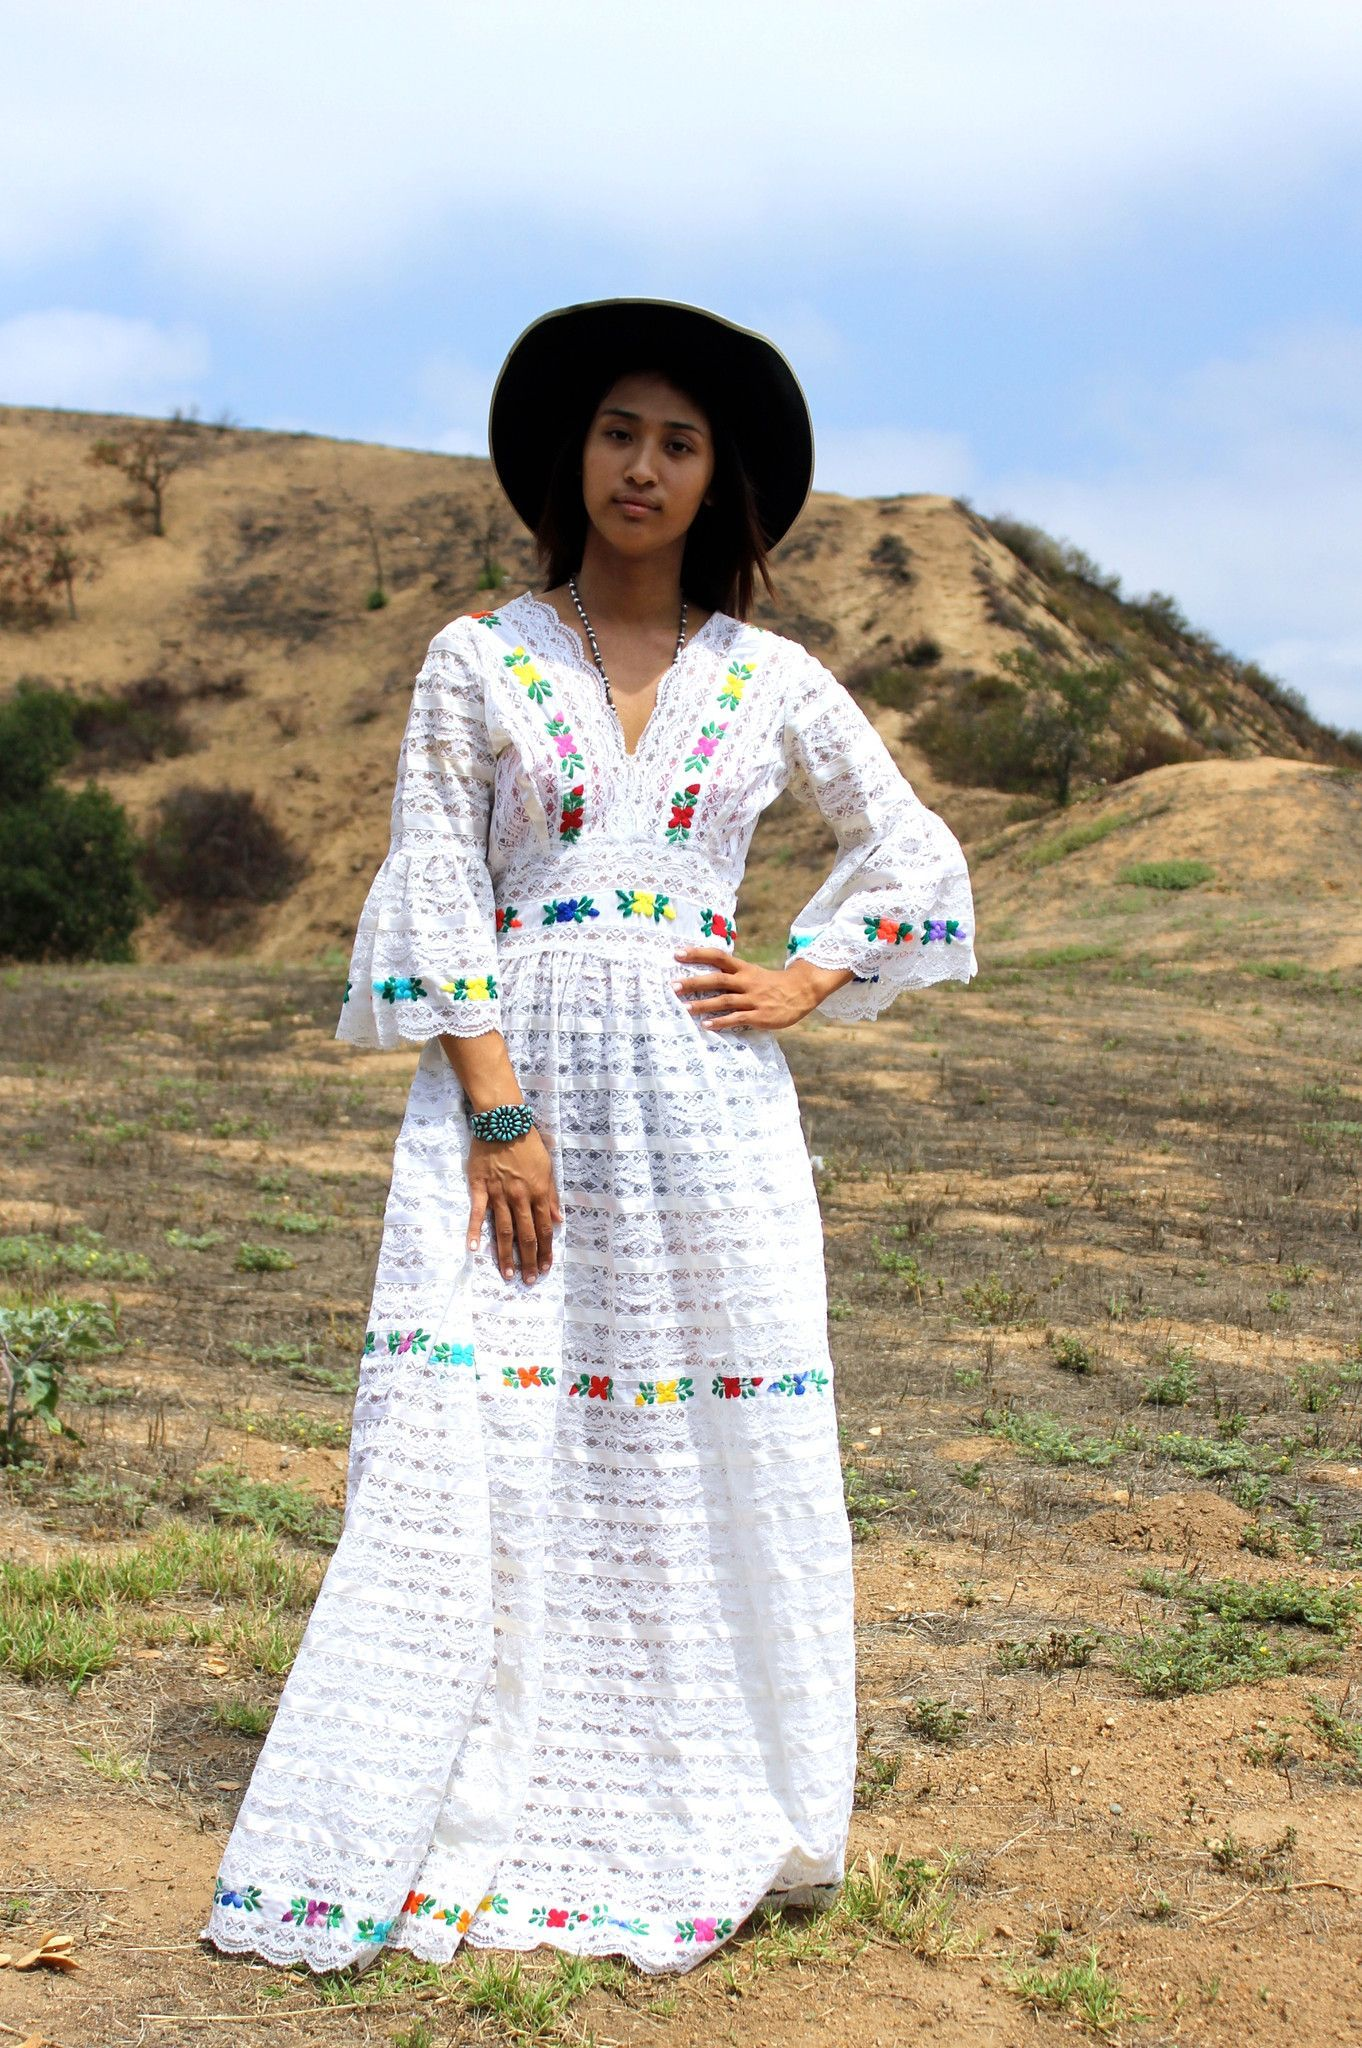 Mexican style wedding dress  Stunning Mexican Lace Wedding Dress Circa  s  Clothes